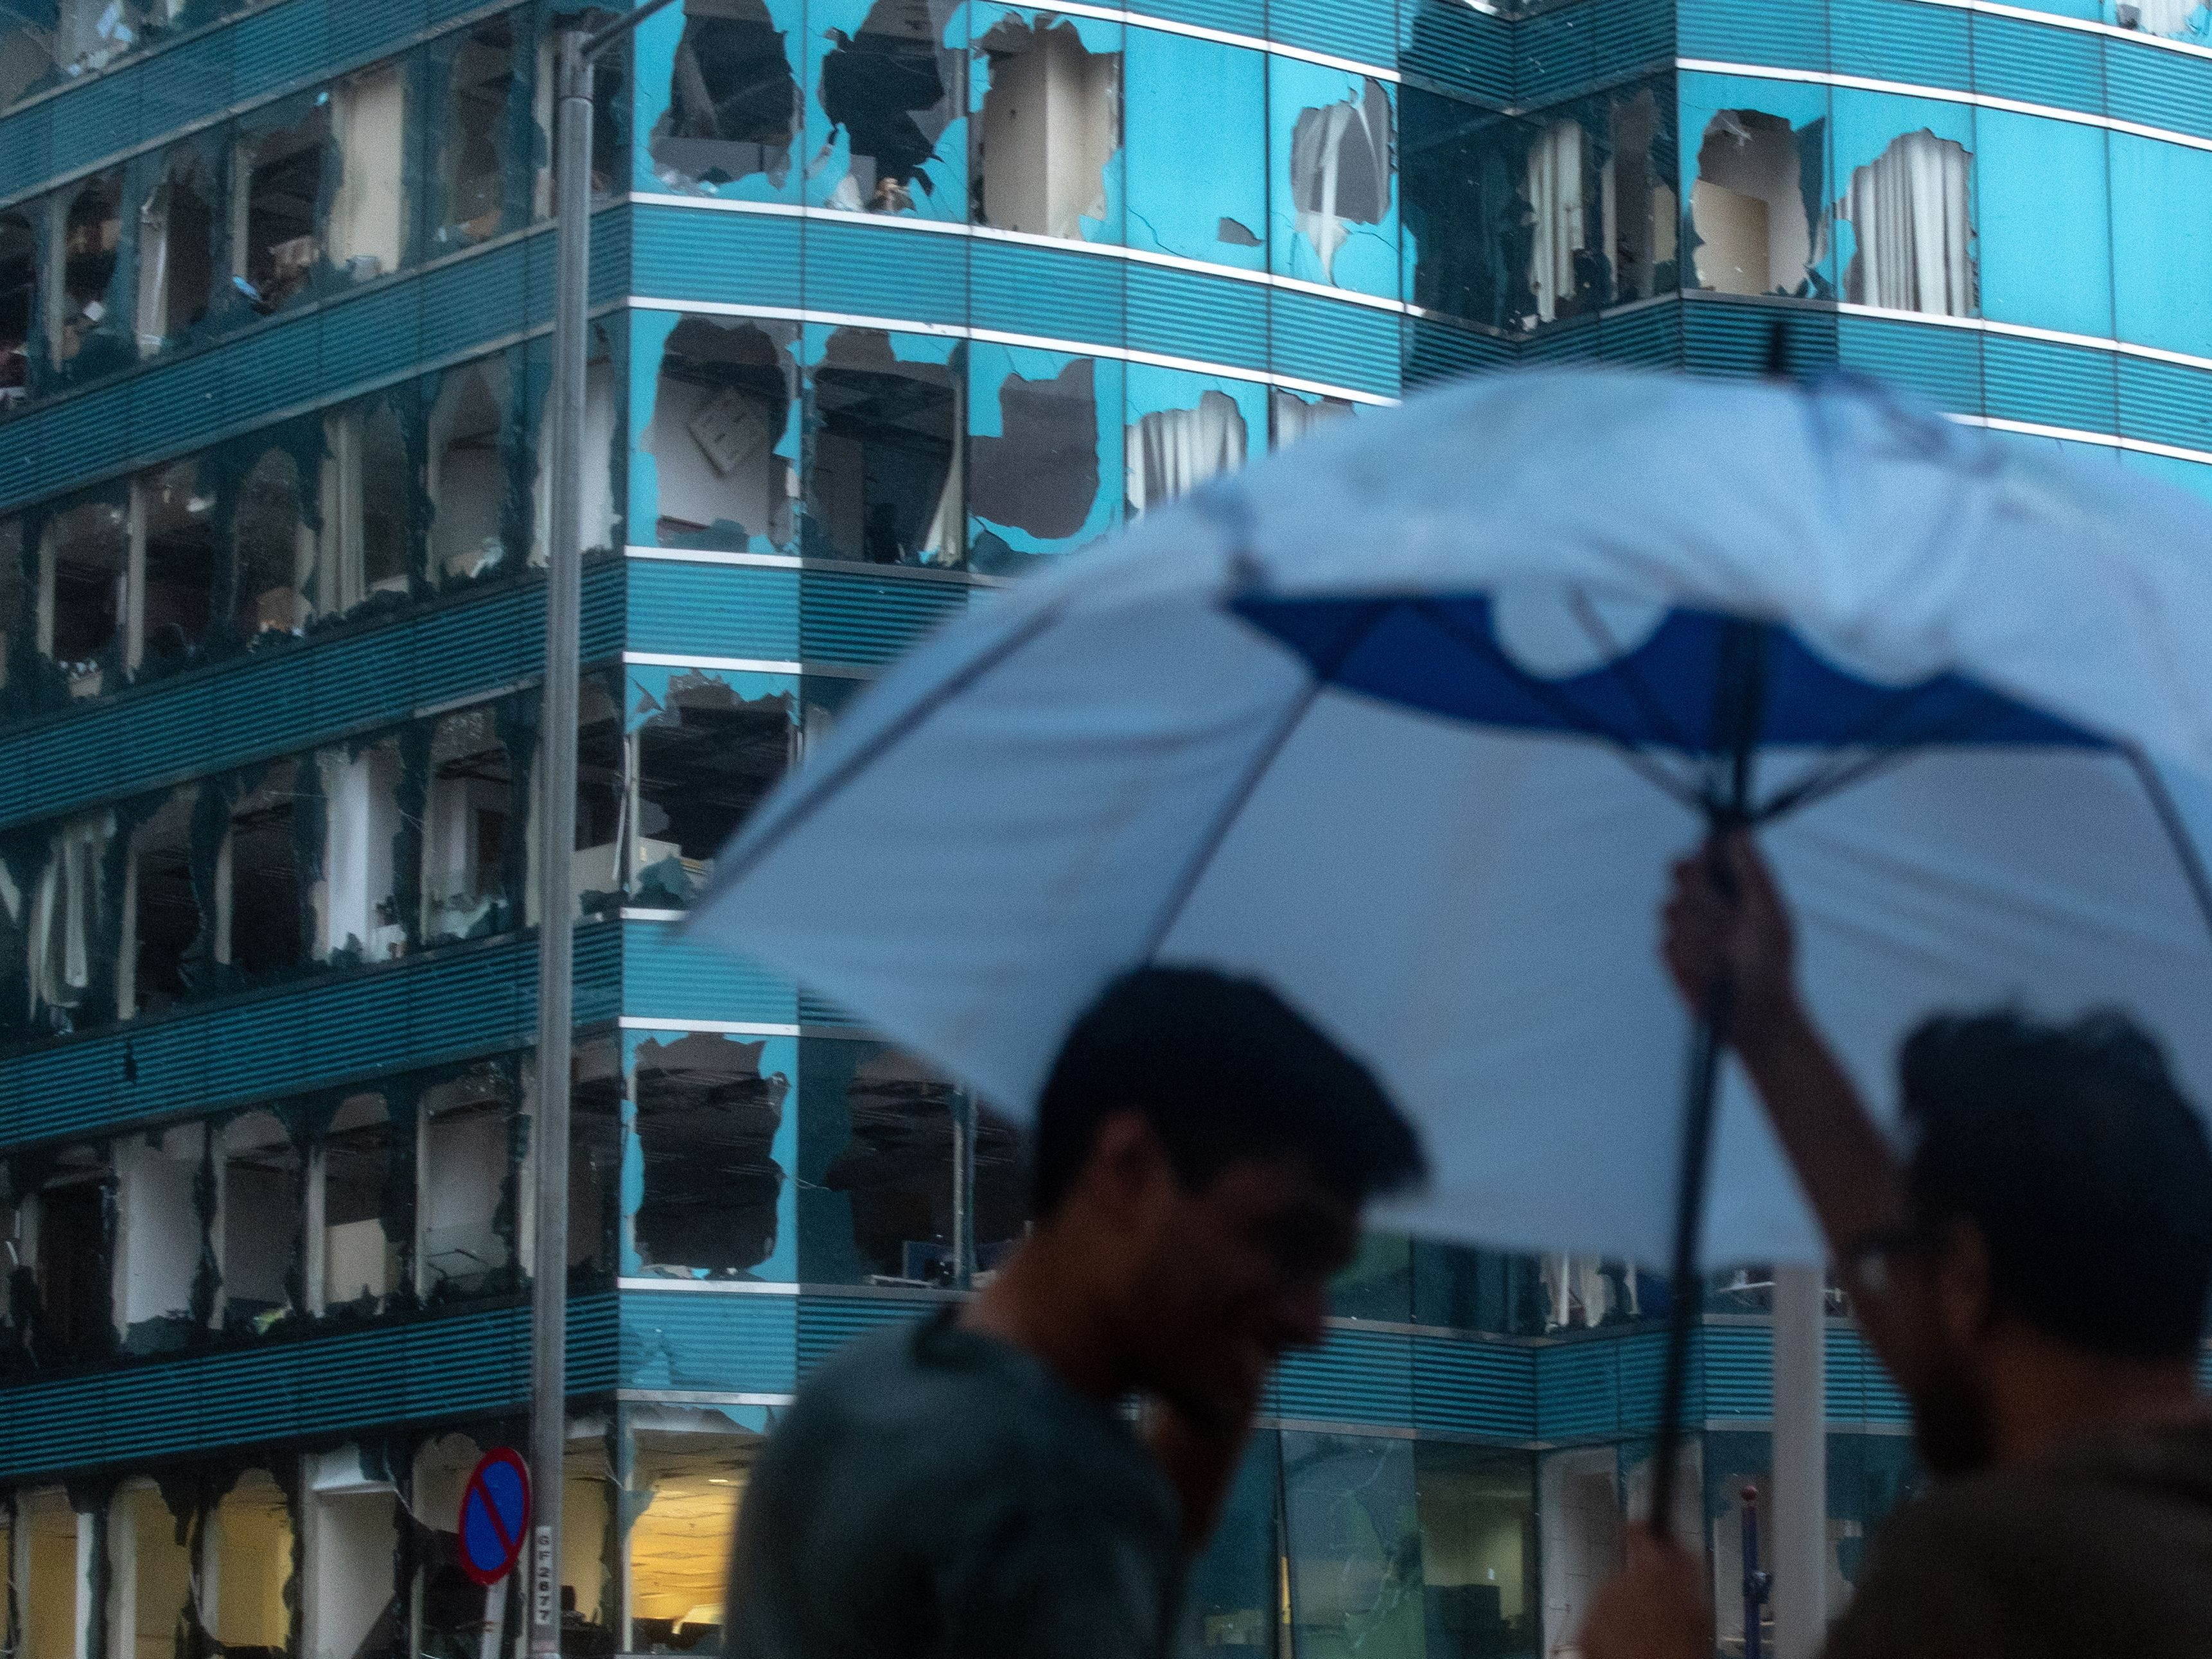 A general view shows windows of a commercial building smashed during Super Typhoon Mangkhut in Hong Kong on Sept. 16, 2018.